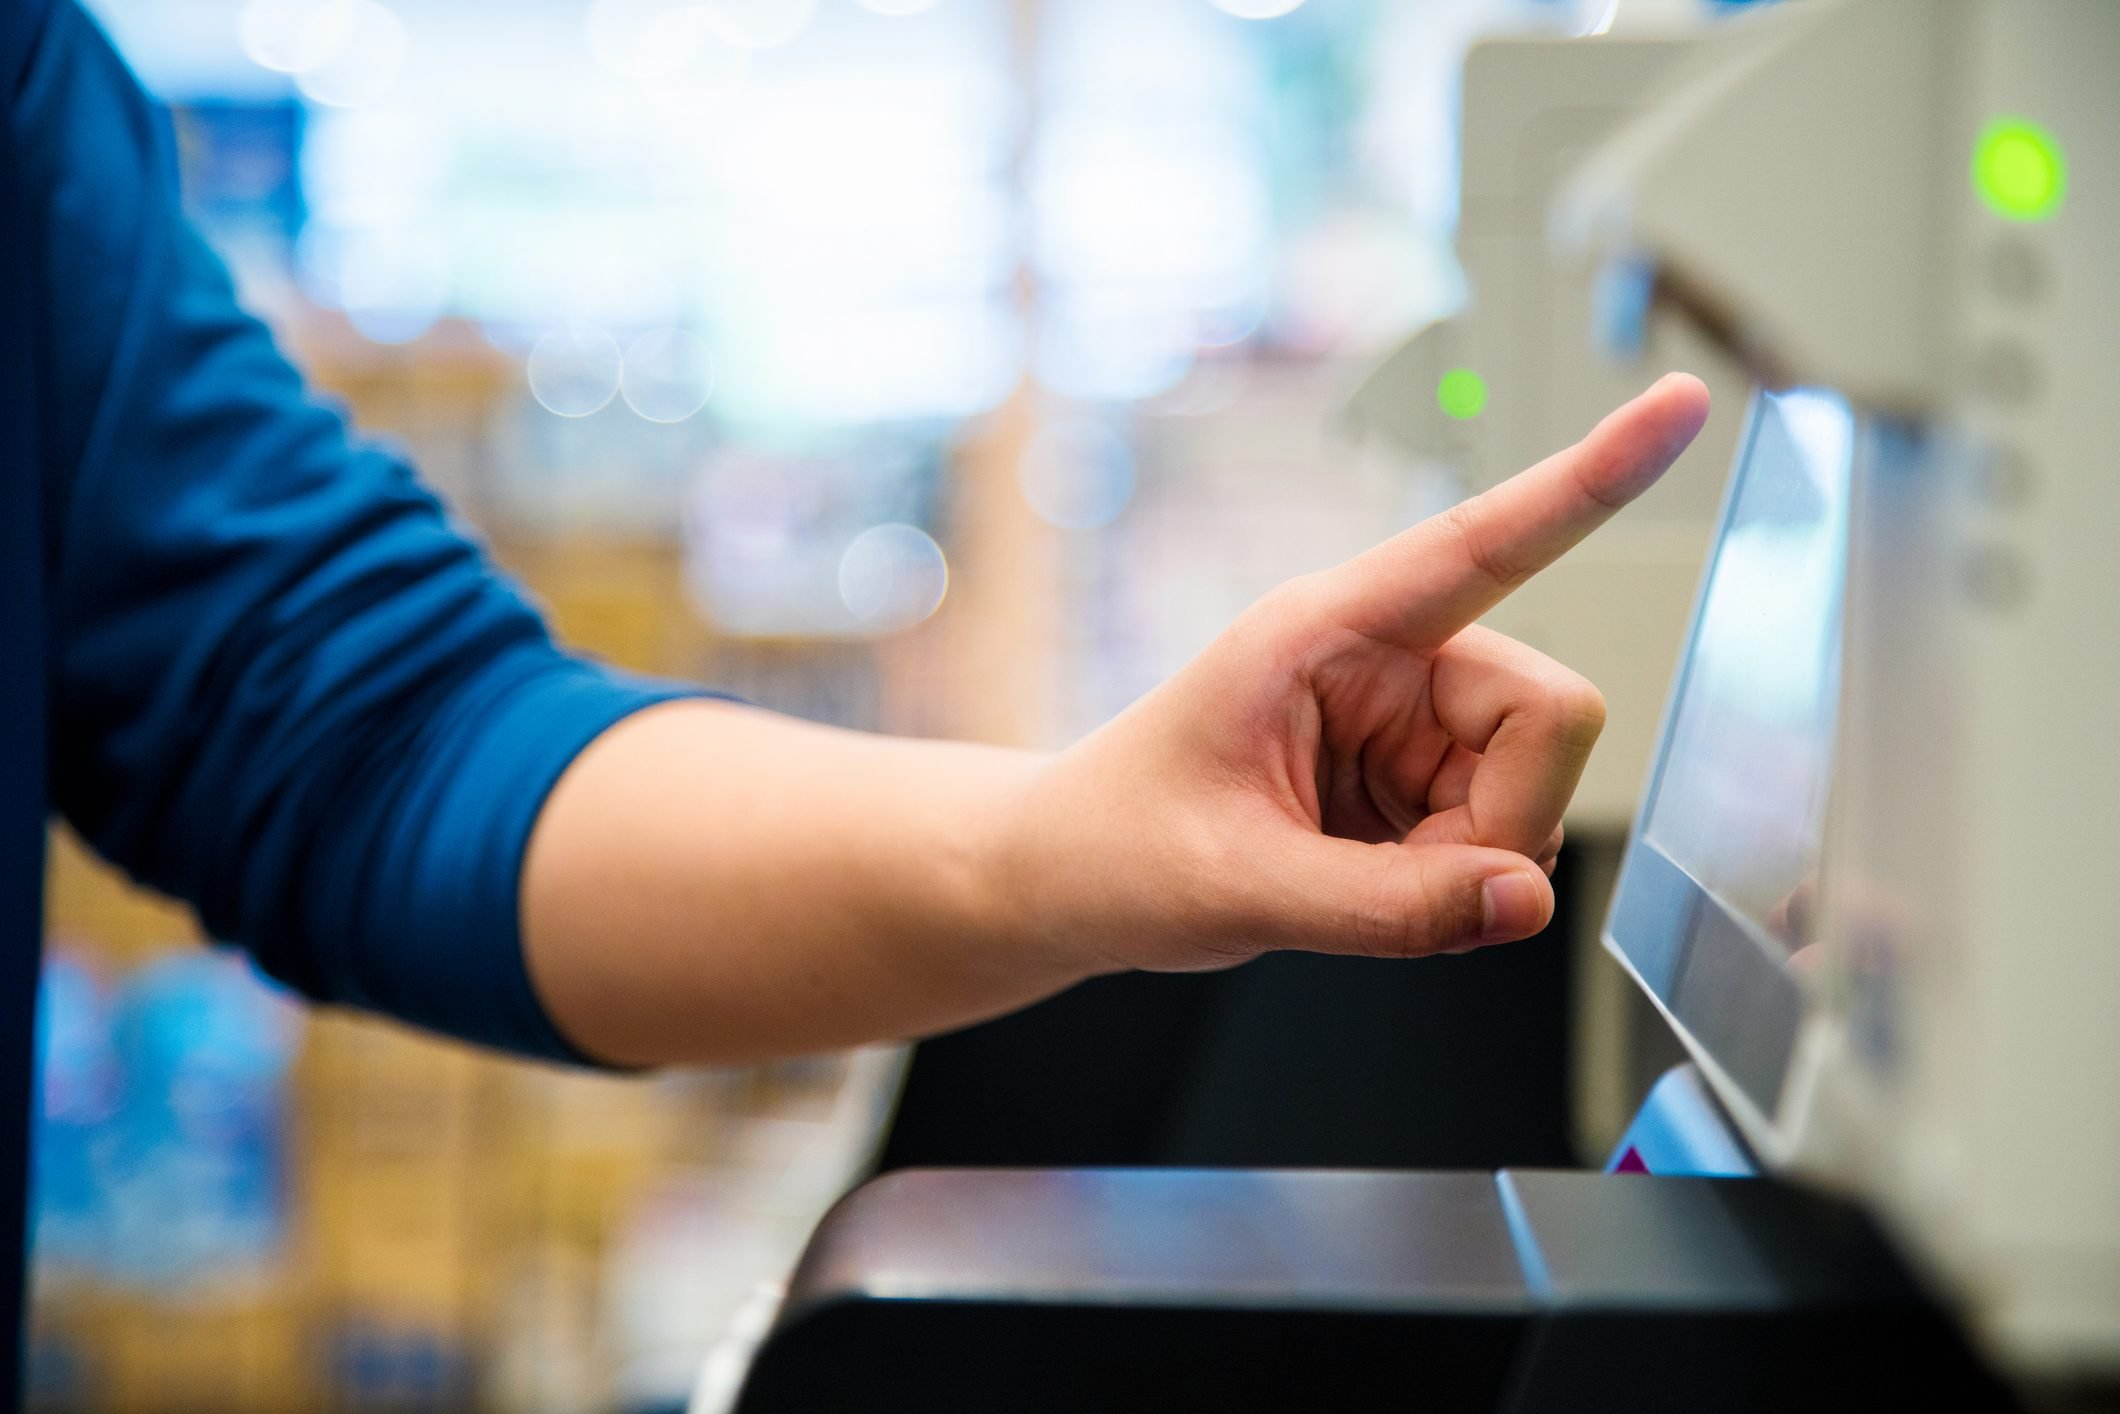 Close up of a woman using a self checkout machine